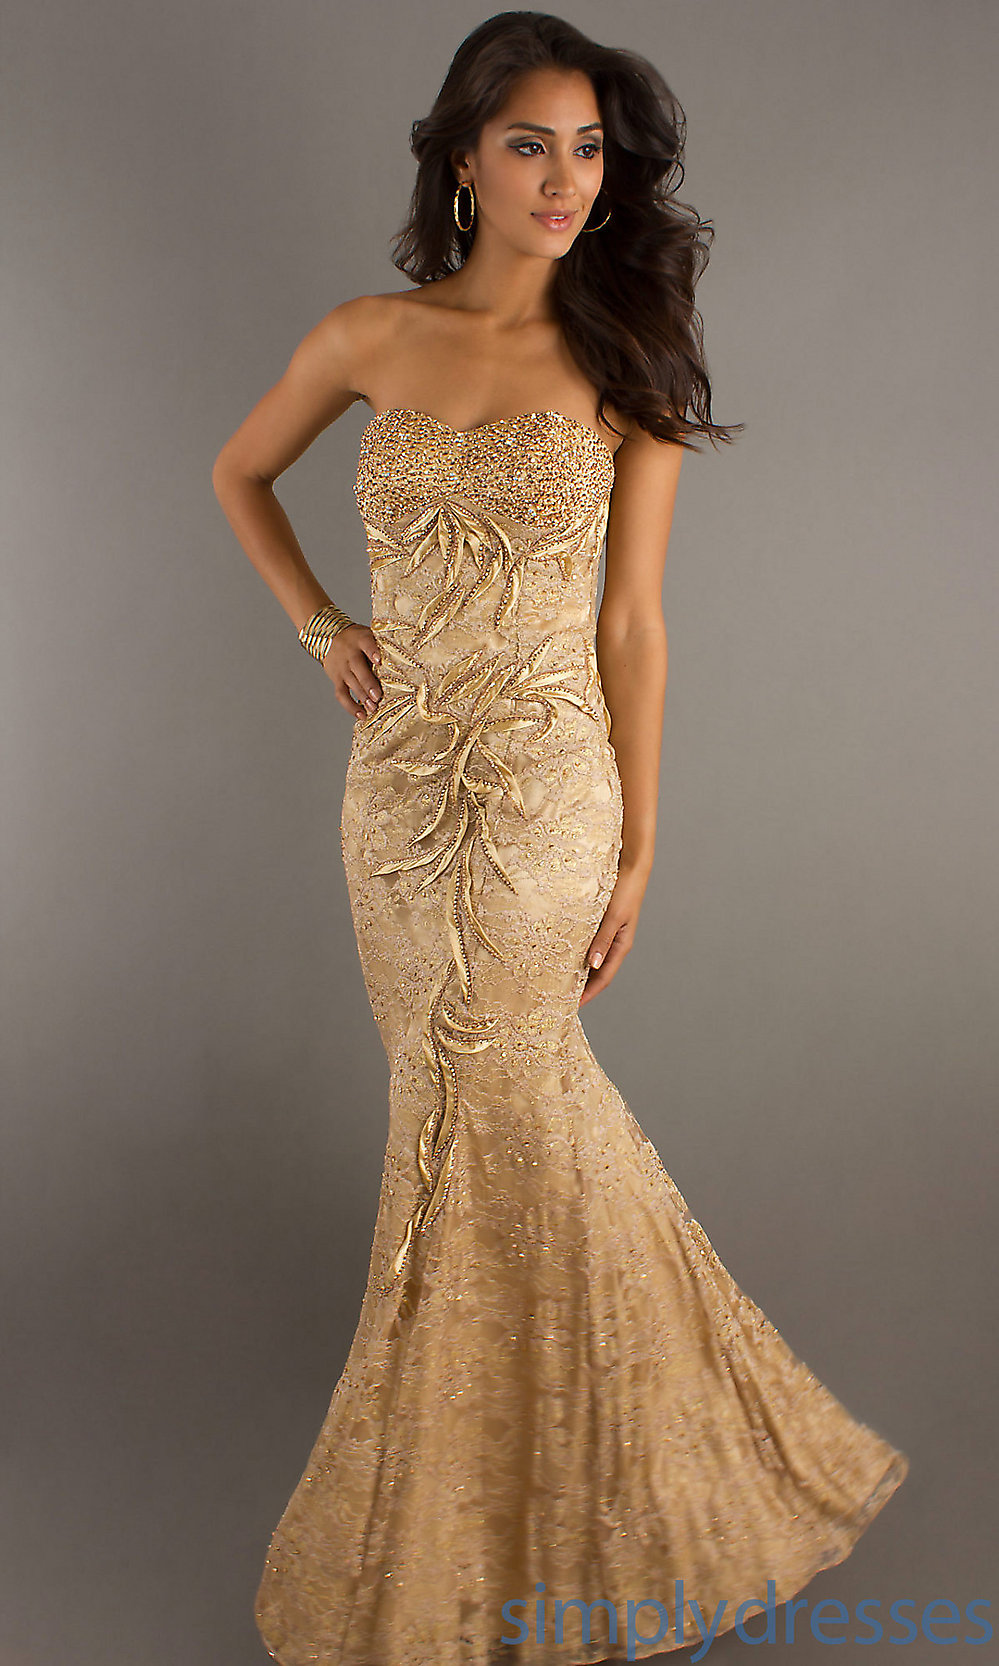 Red Black And Gold Prom Dresses – Online Fashion Review – Always ...